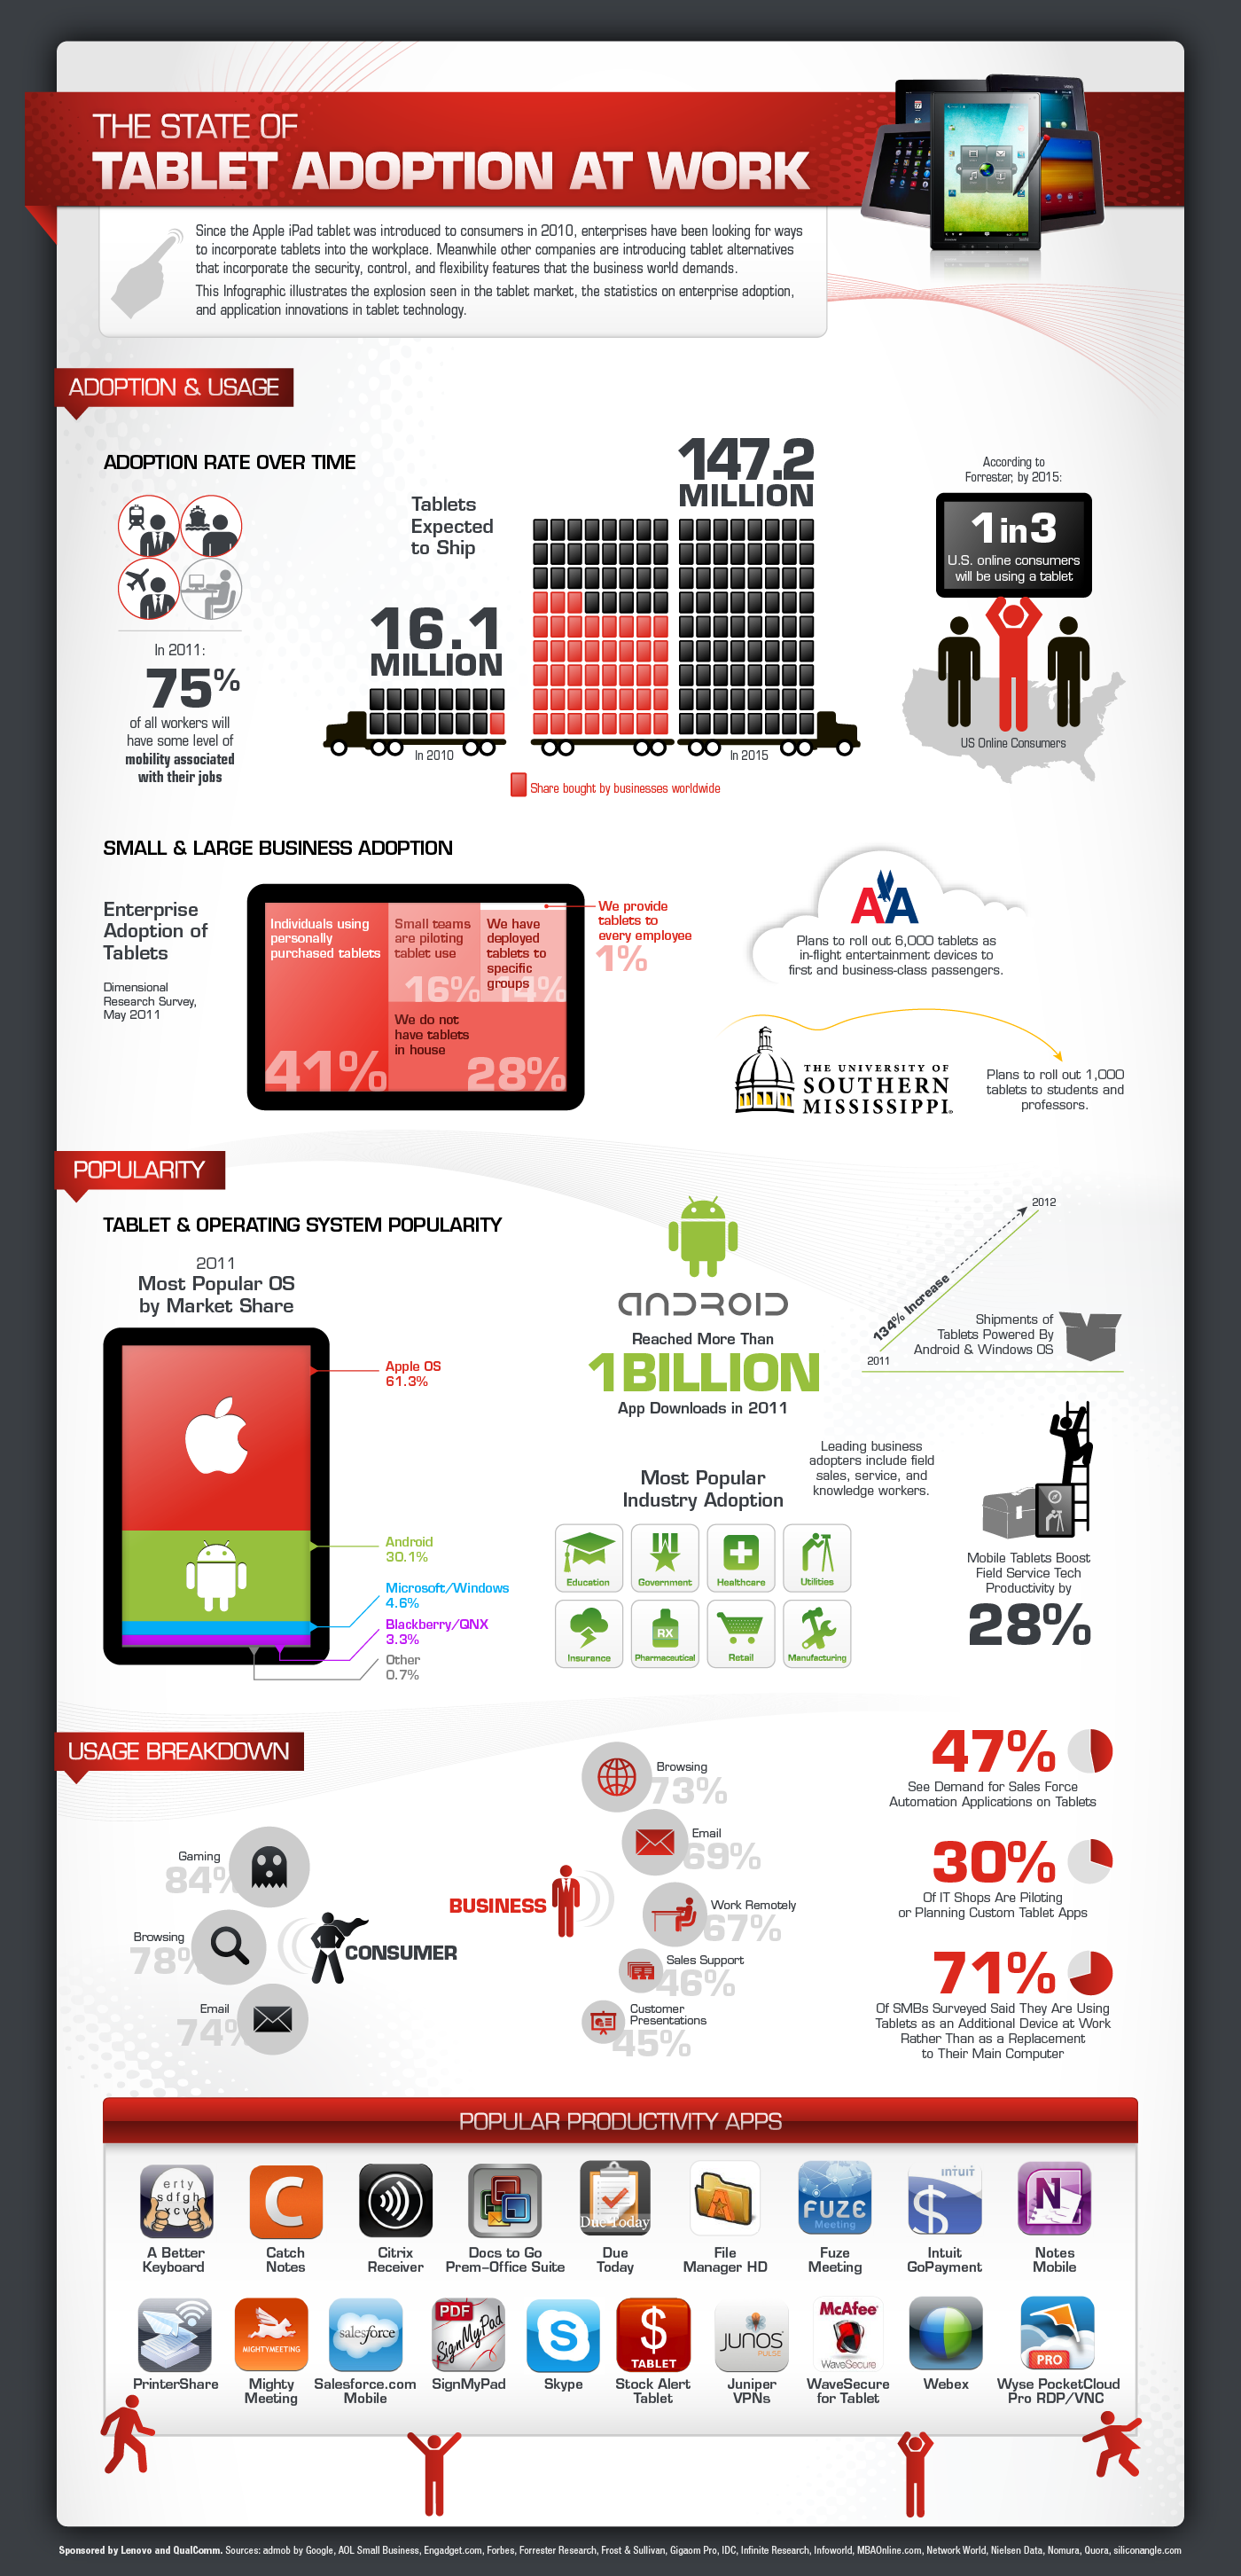 The State of Tablet Adoption at Work